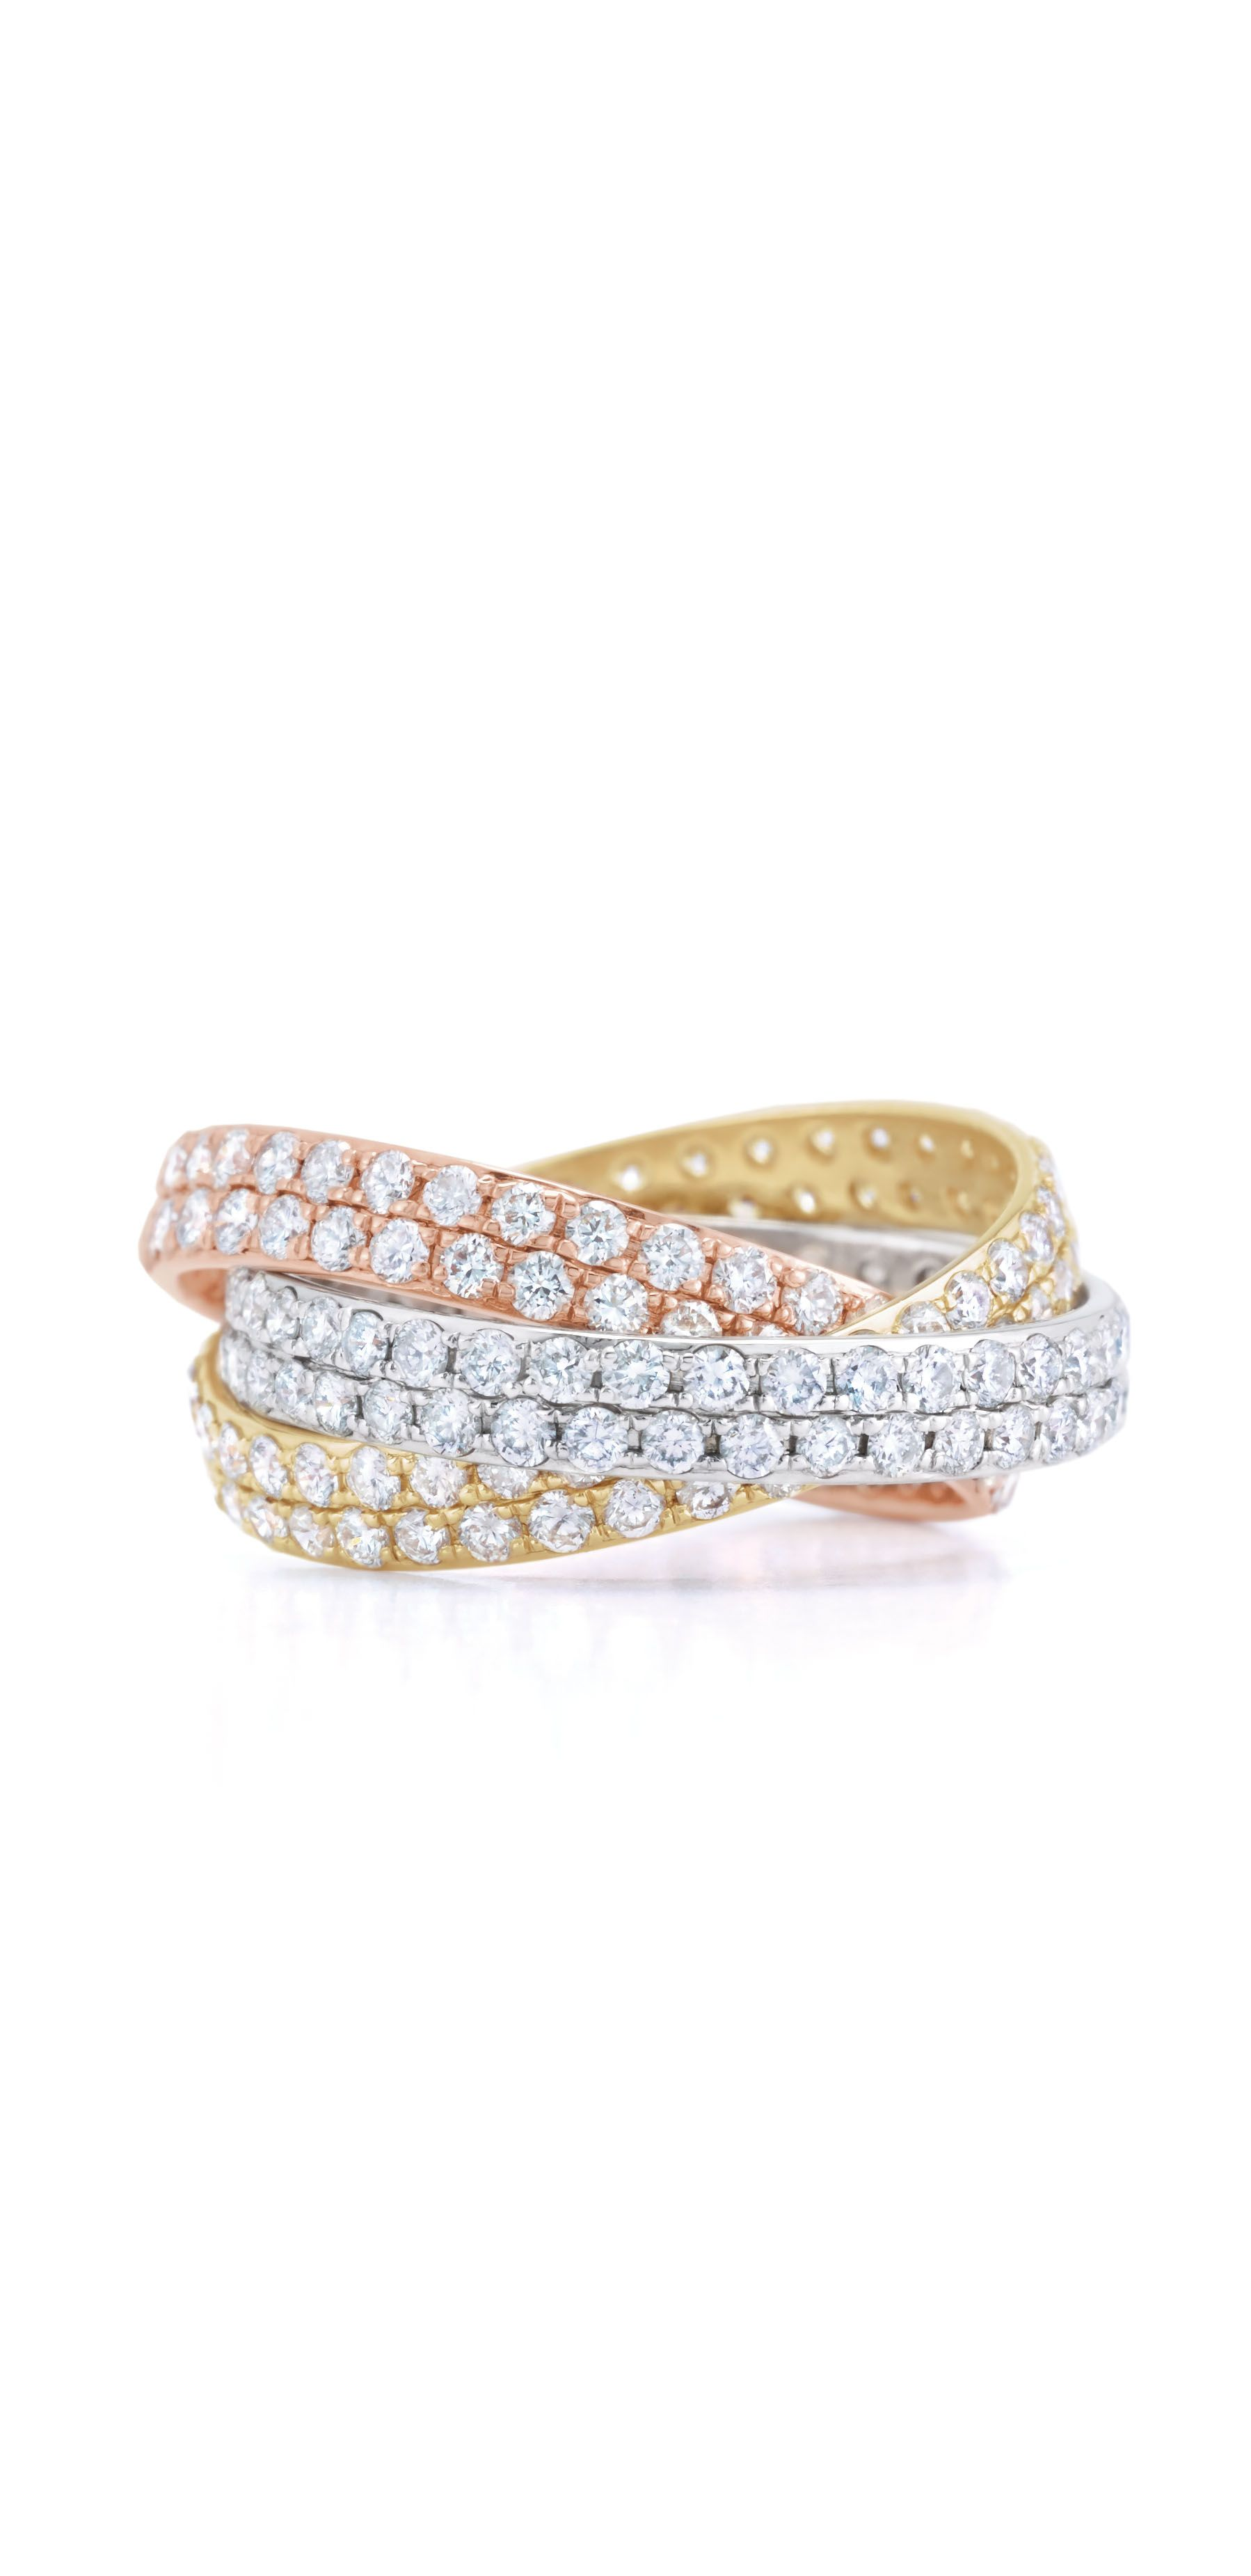 stone band wedding diamond eternity bands jewelry yellow mixed gold bridal